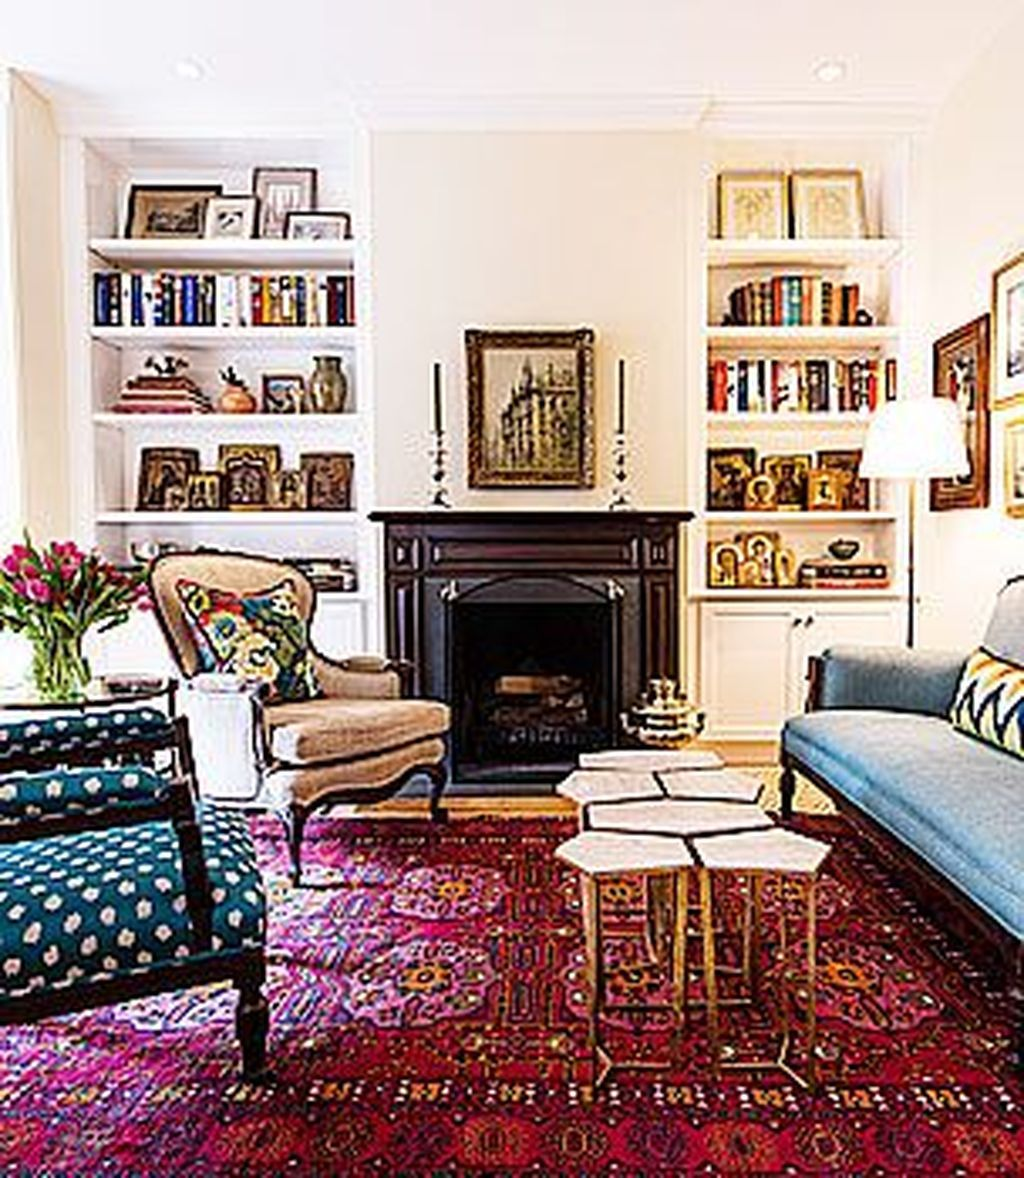 17 Beautiful Persian Rug Ideas For Living Room Decor  Rugs in